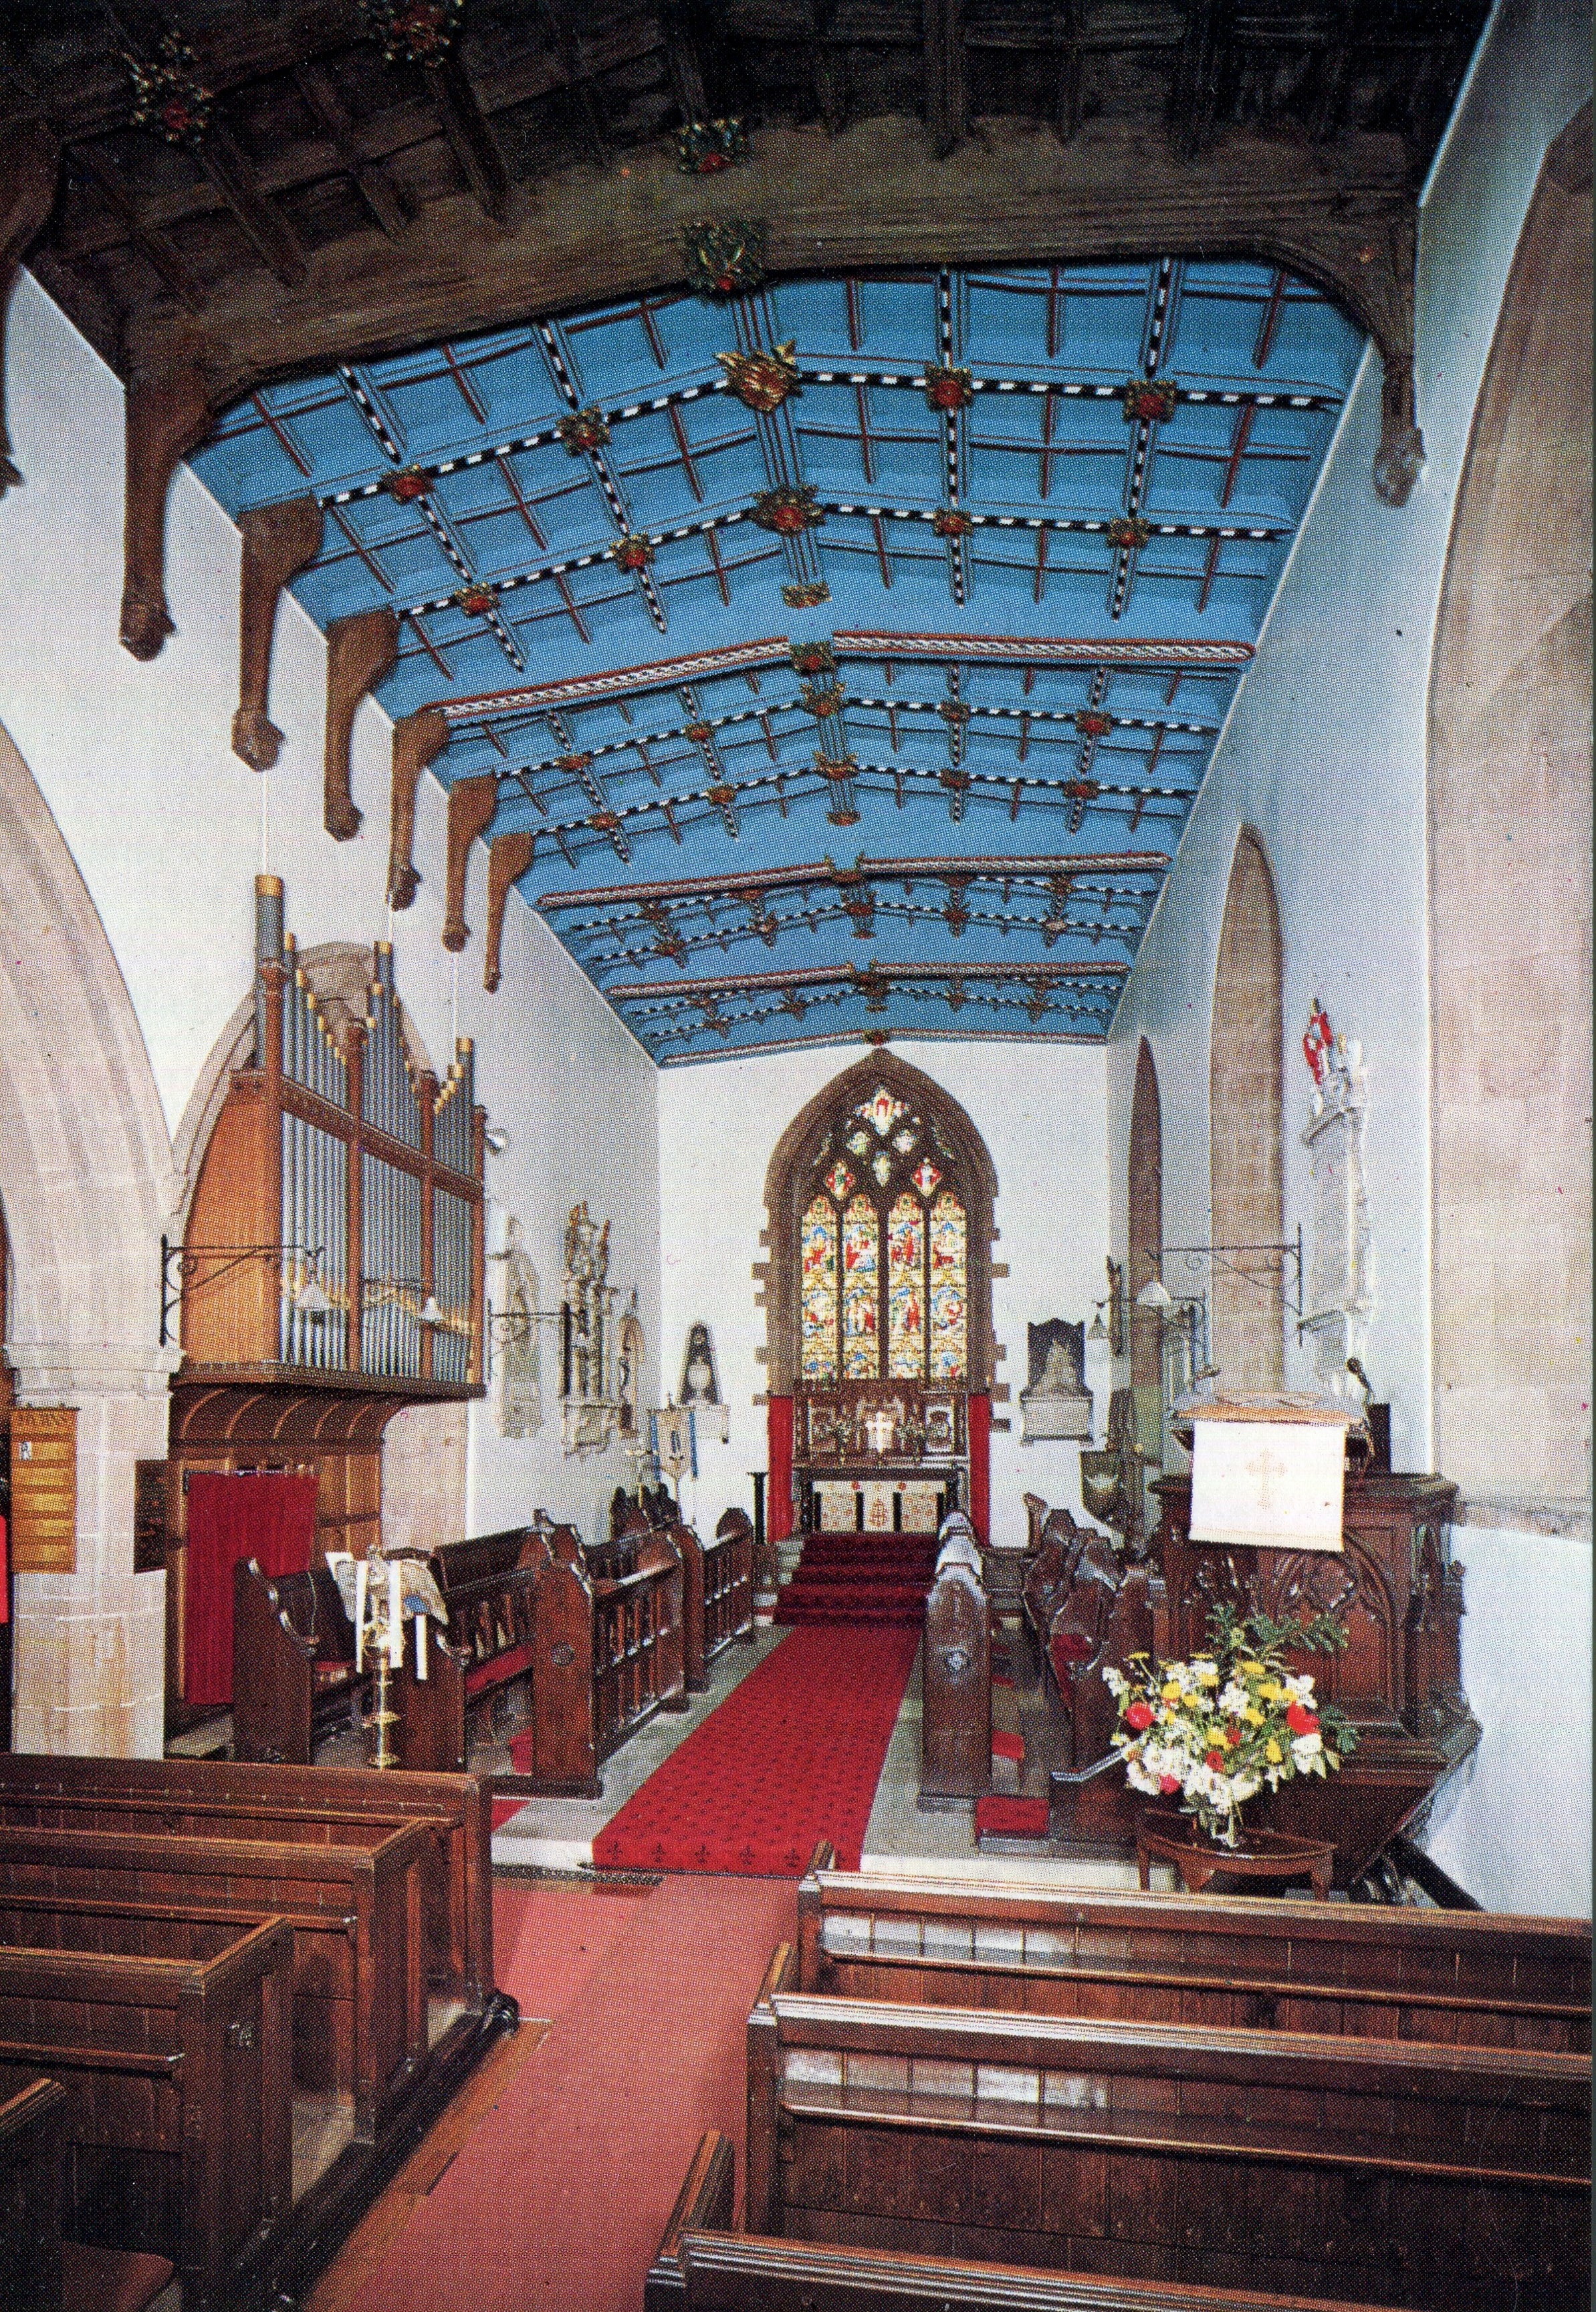 St Peter's in Ruthin